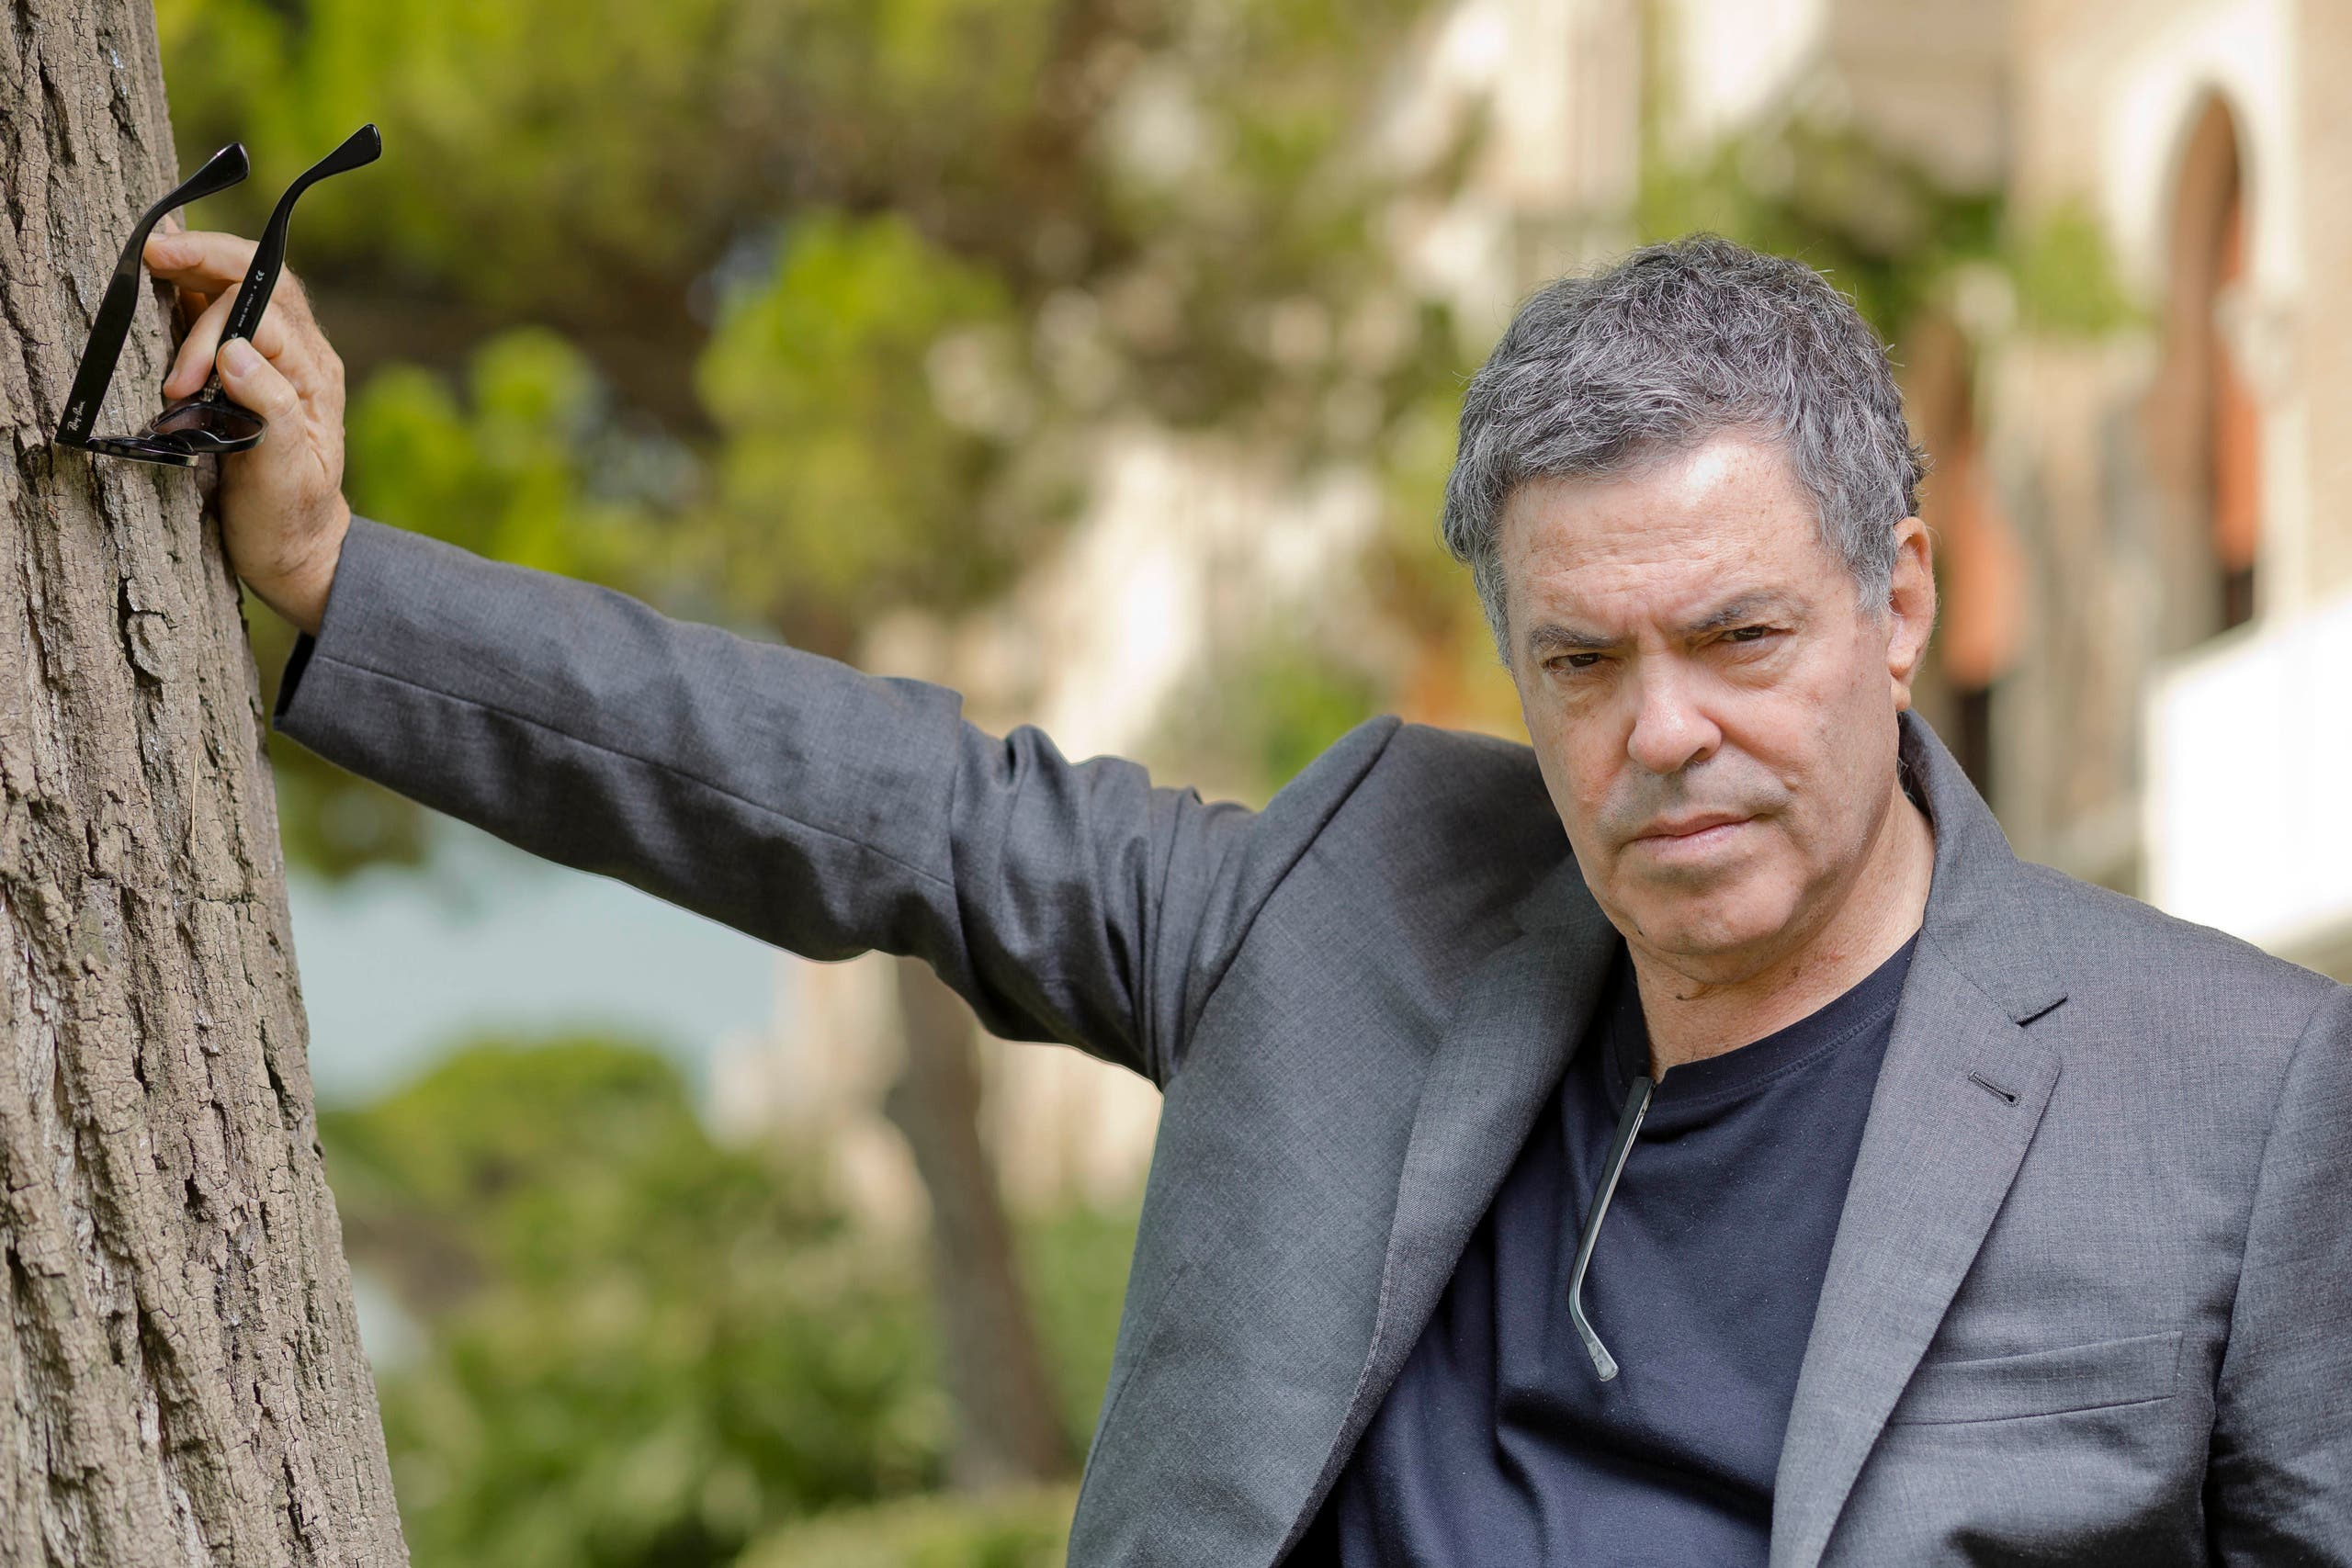 Director Amos Gitai poses for portraits at the 70th edition of the Venice Film Festival held from Aug. 28 through Sept. 7, in Venice, Italy, Wednesday, Sept. 4, 2013. (AP